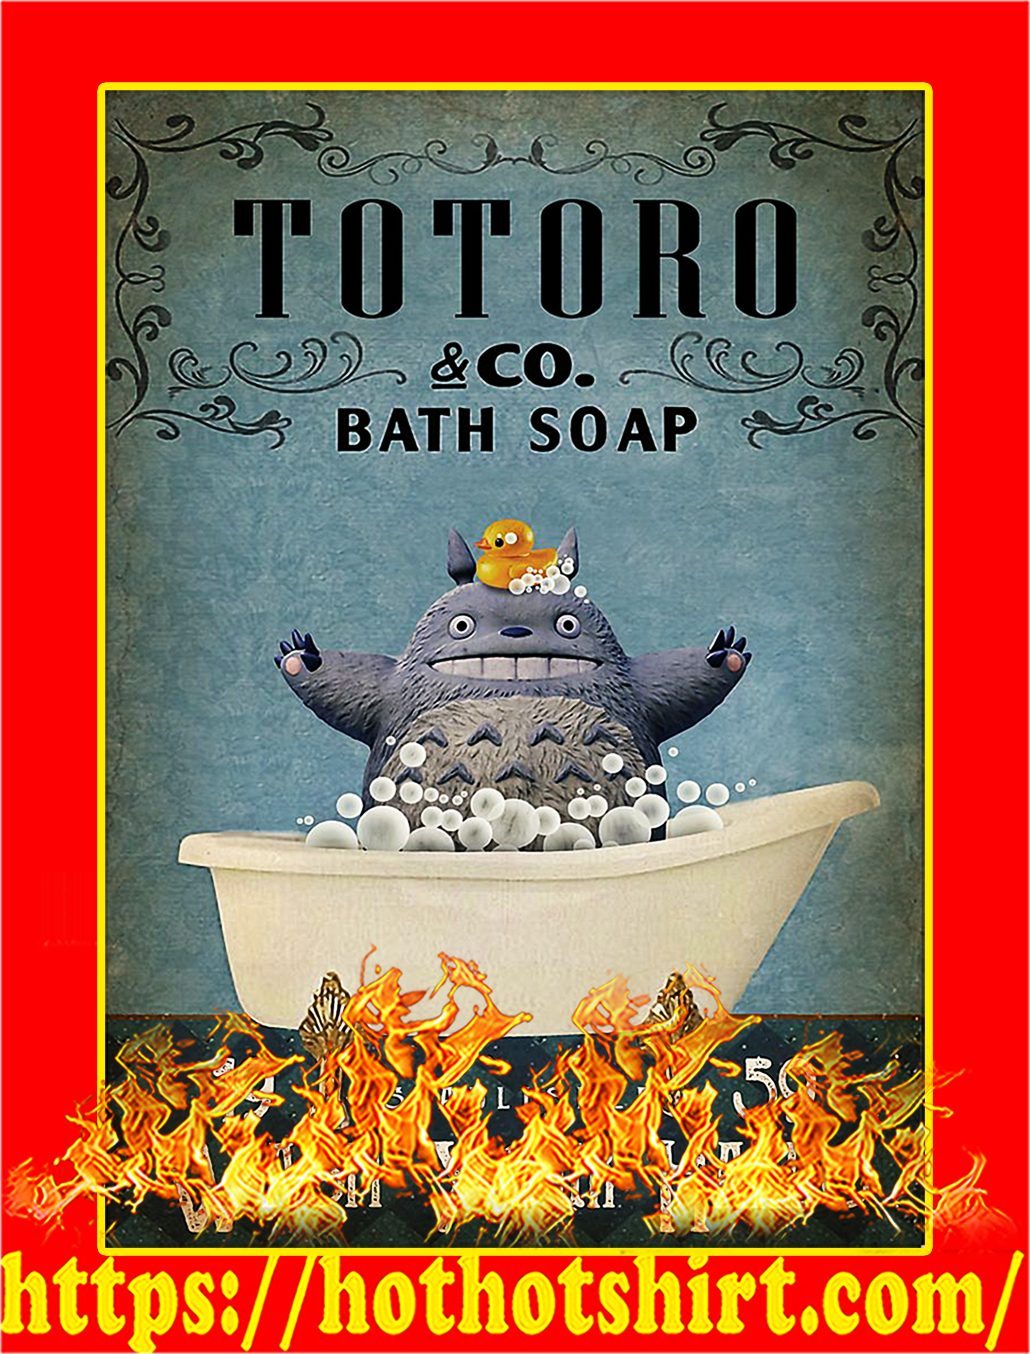 Totoro co bath soap wash your hands poster - A3